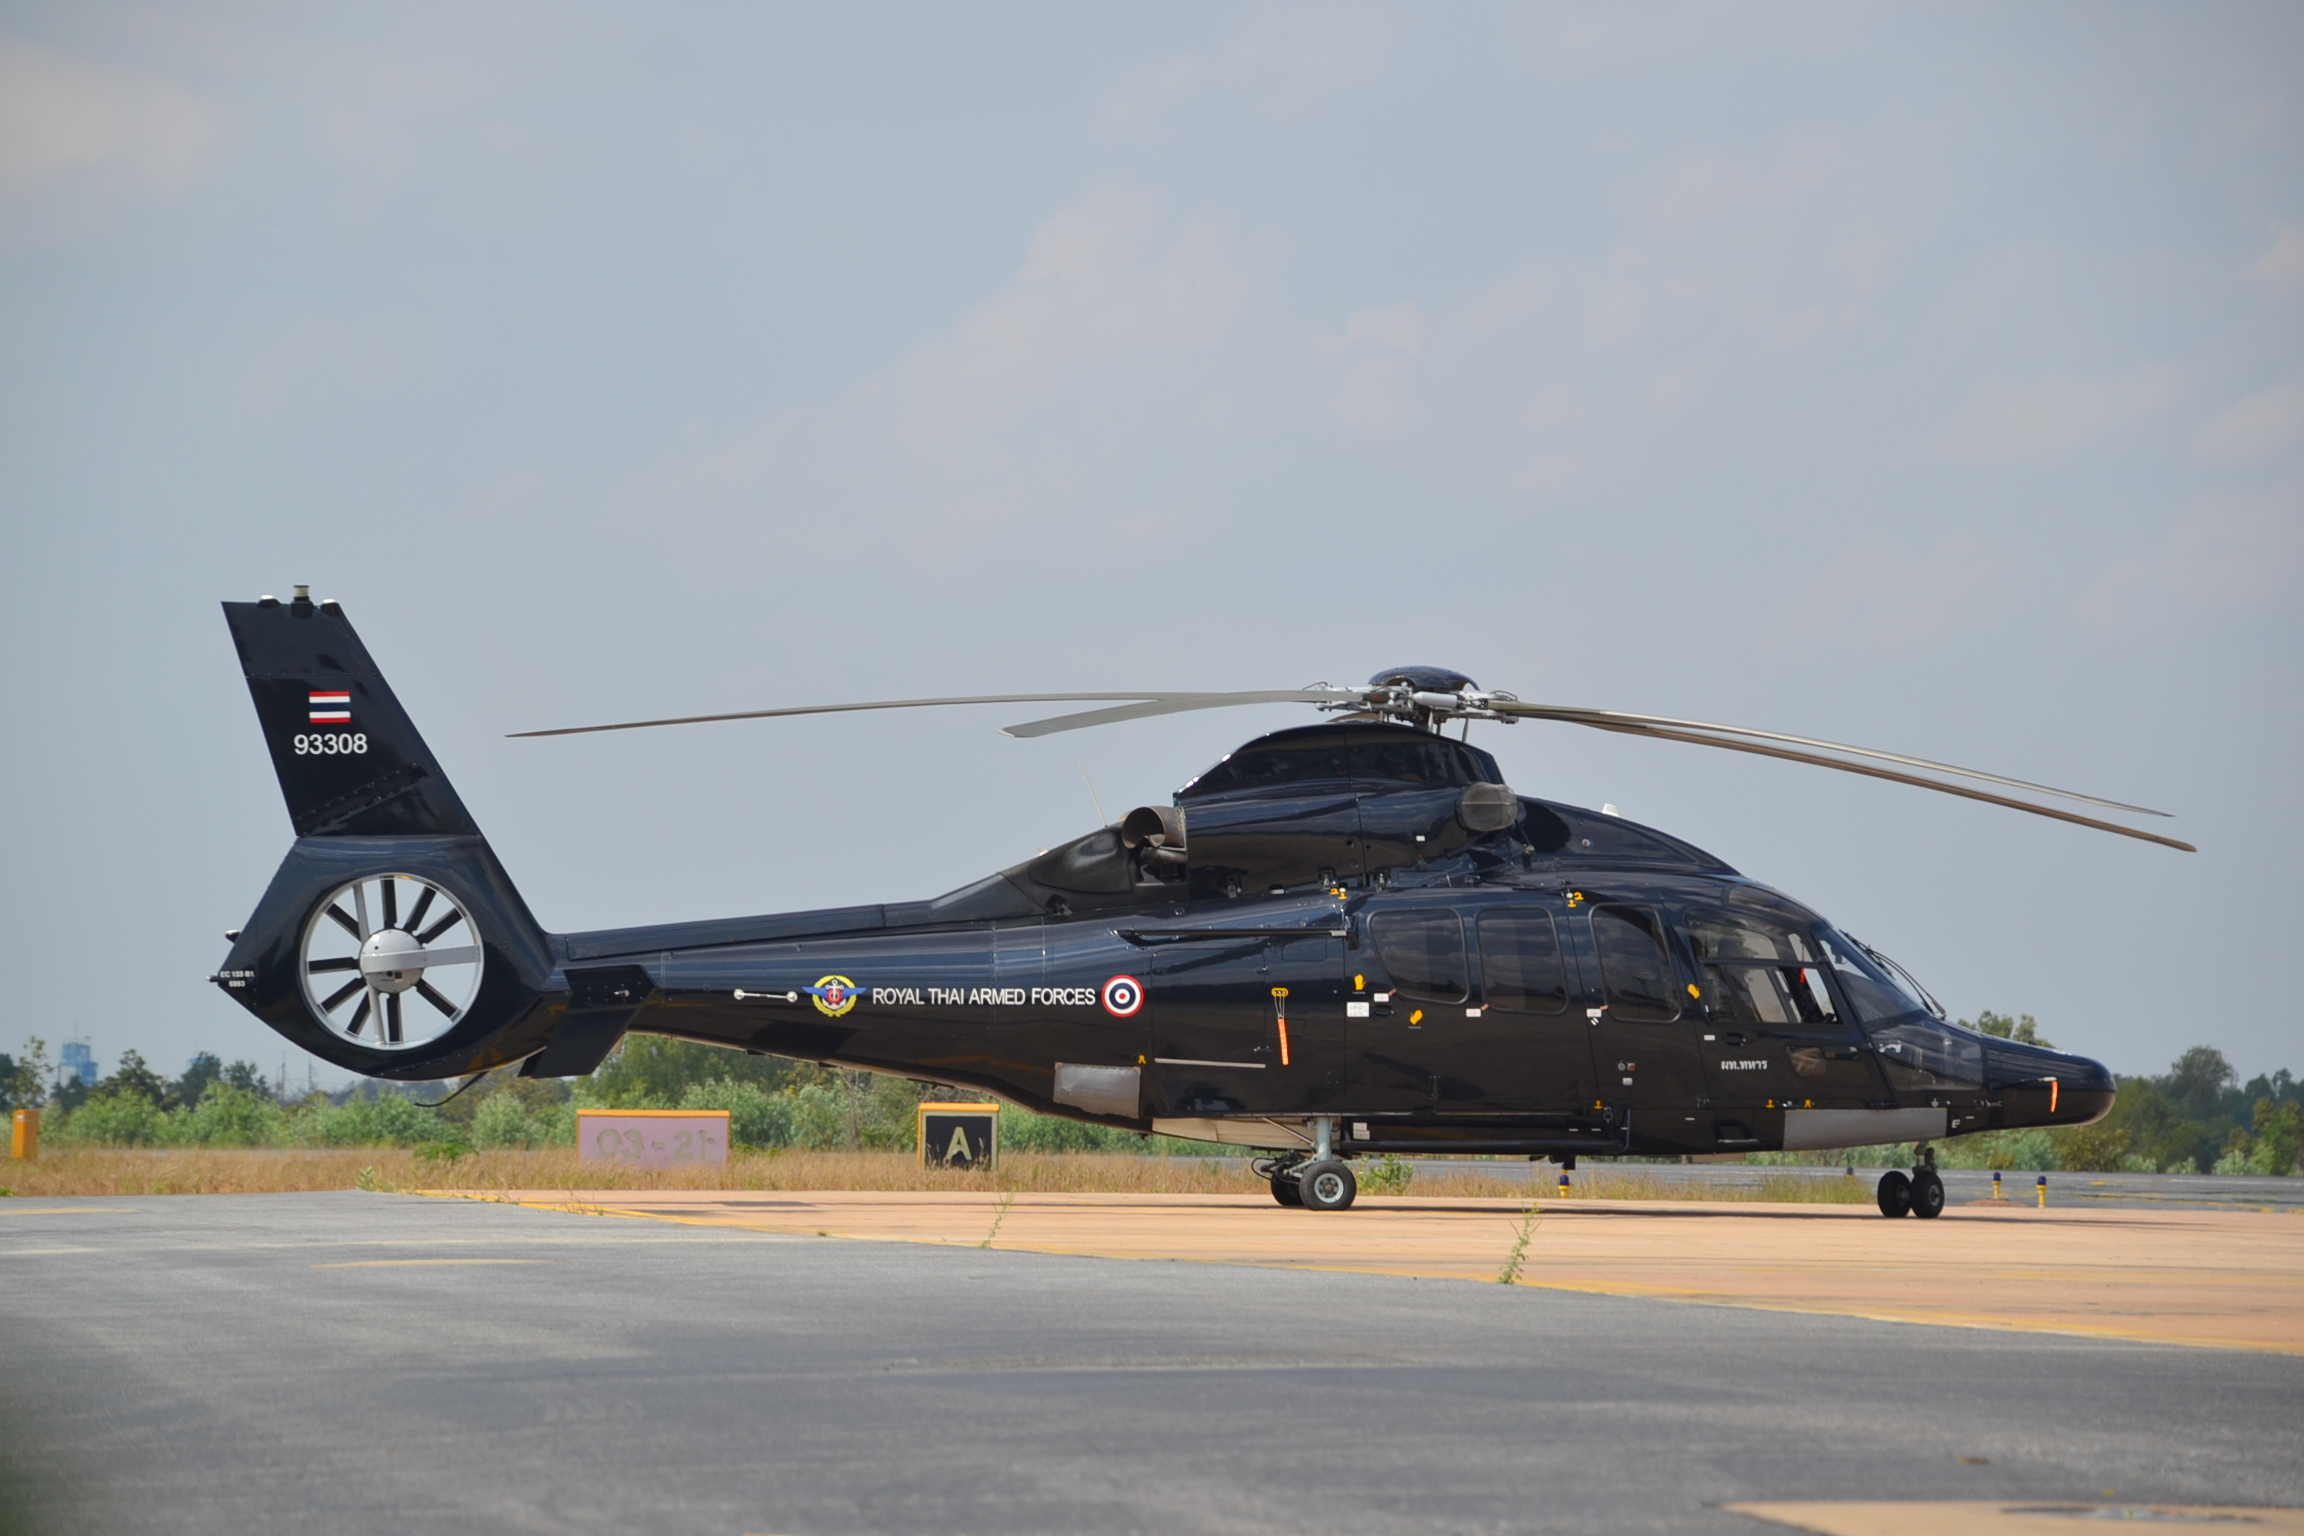 File:Airbus Helicopters EC155 of the Royal Thai Armed Forces